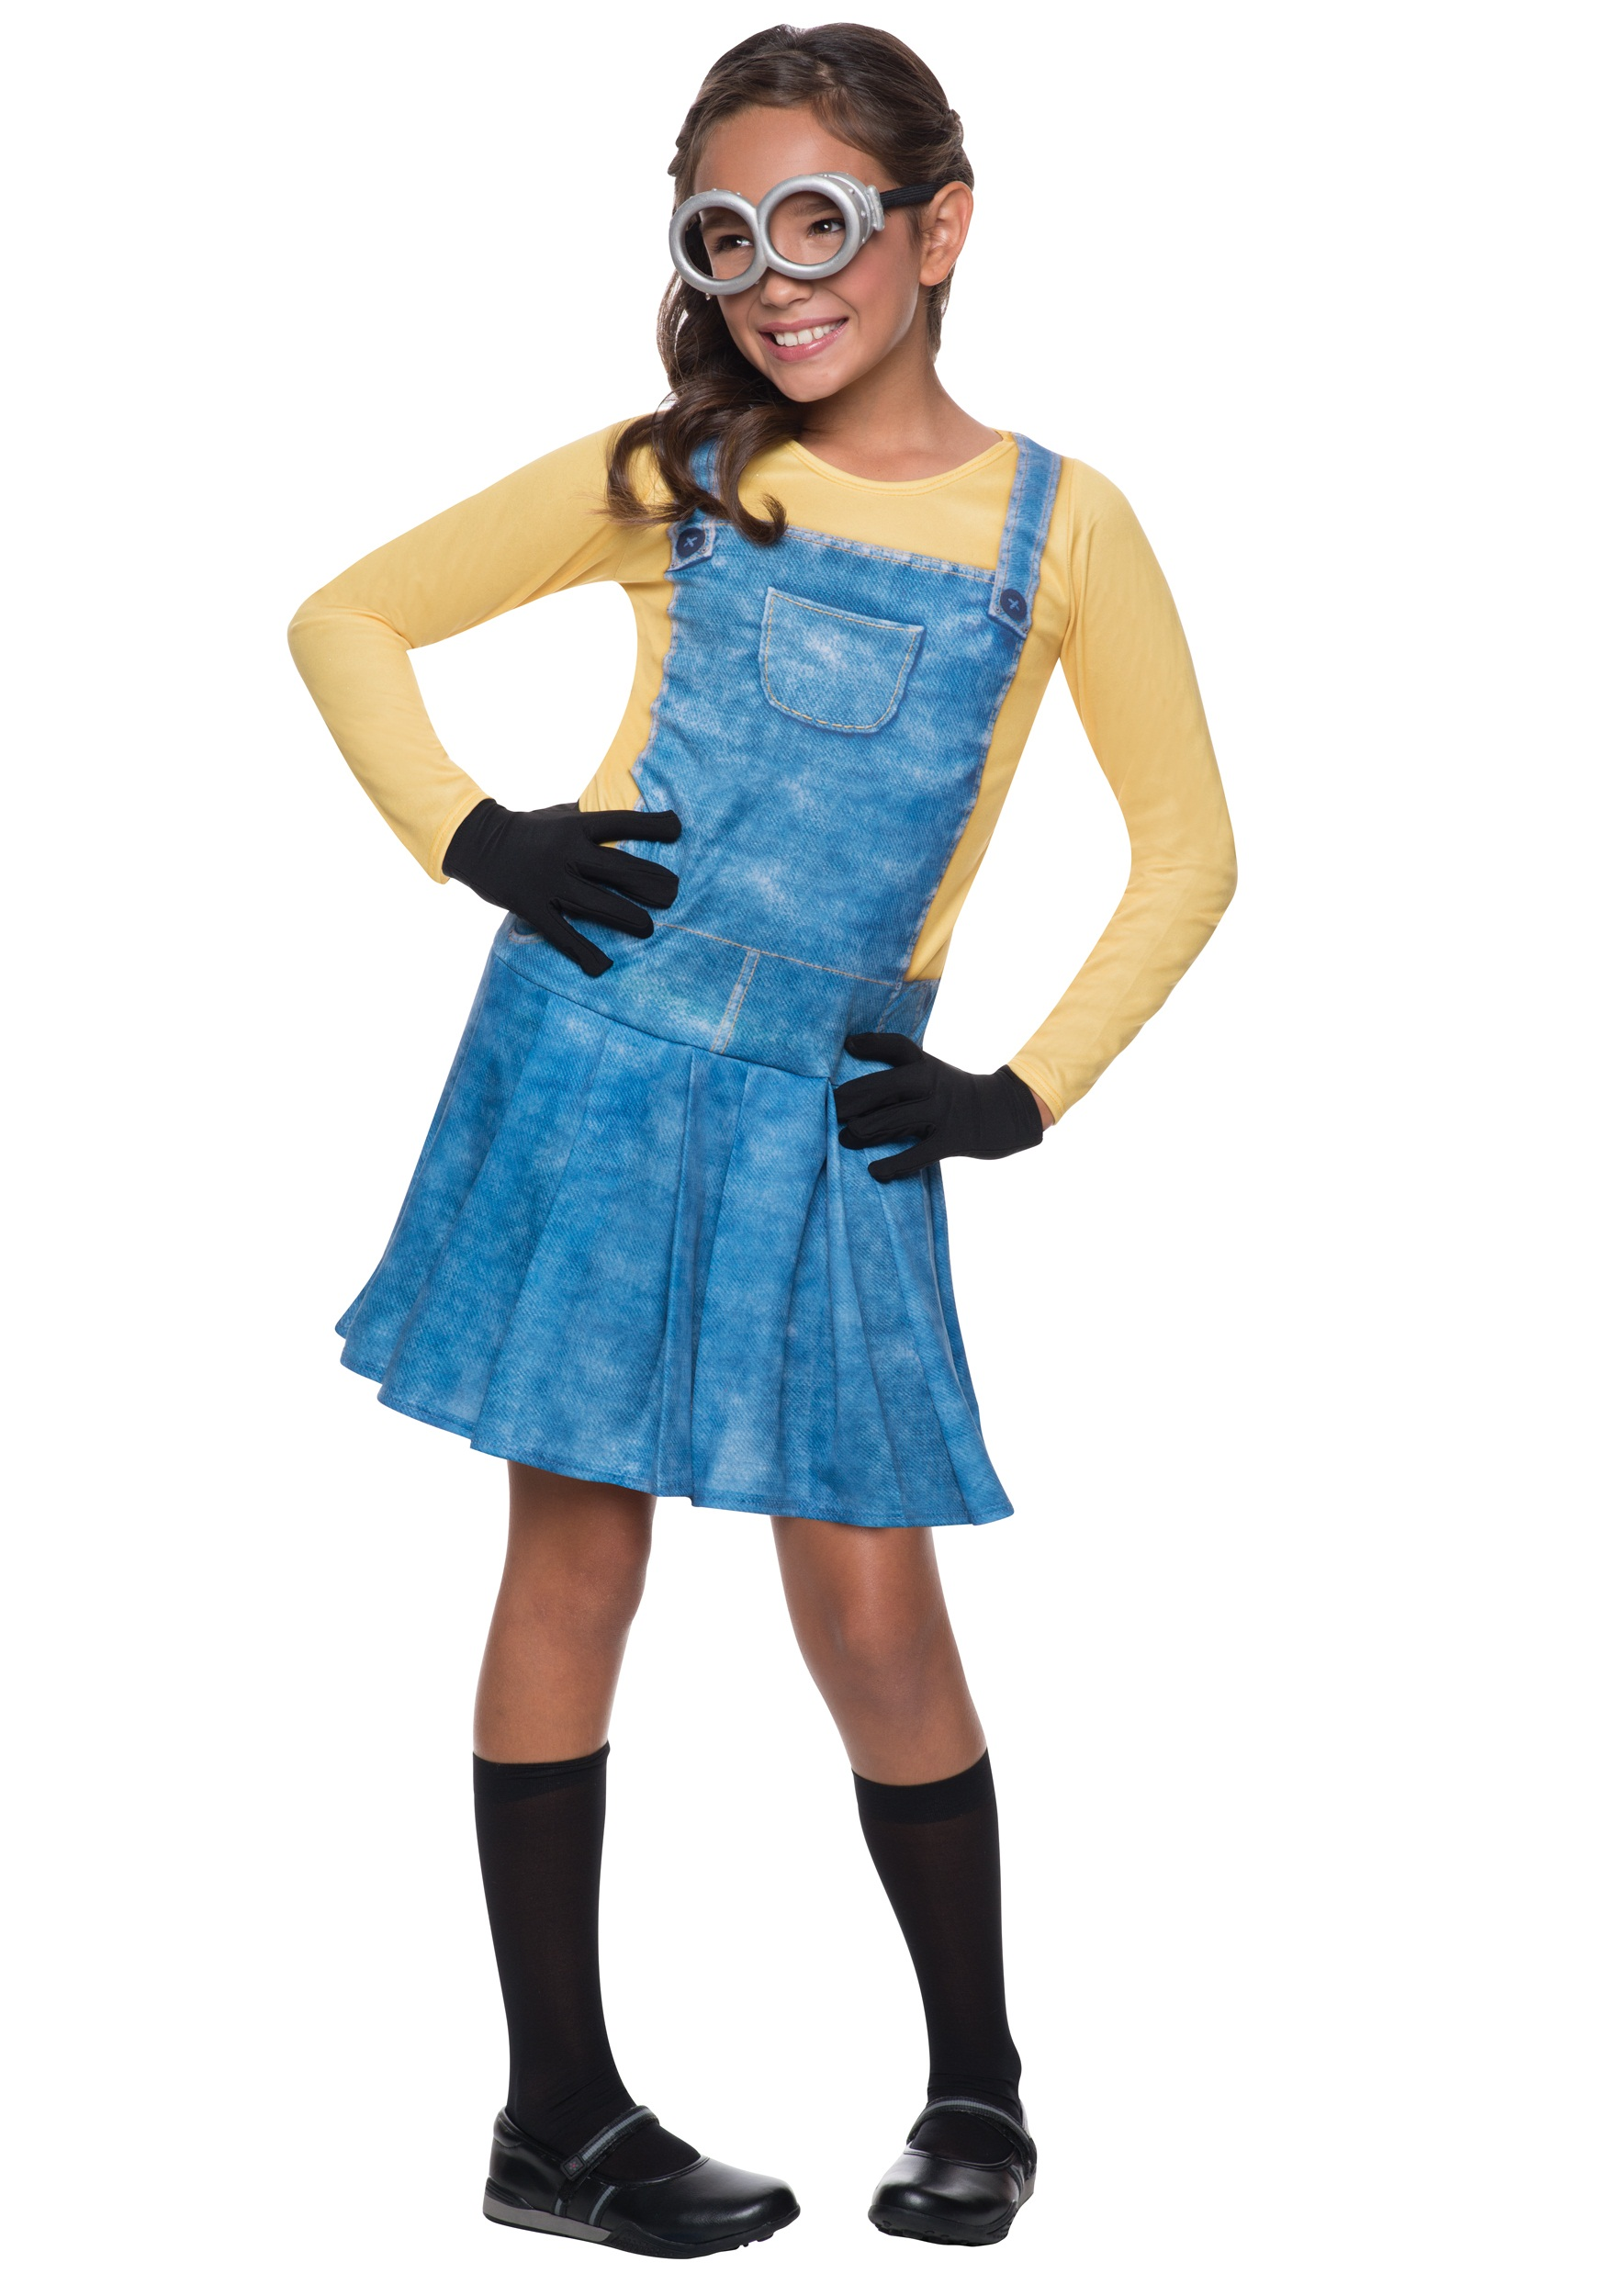 Despicable Me Minion Costumes - HalloweenCostumes.com